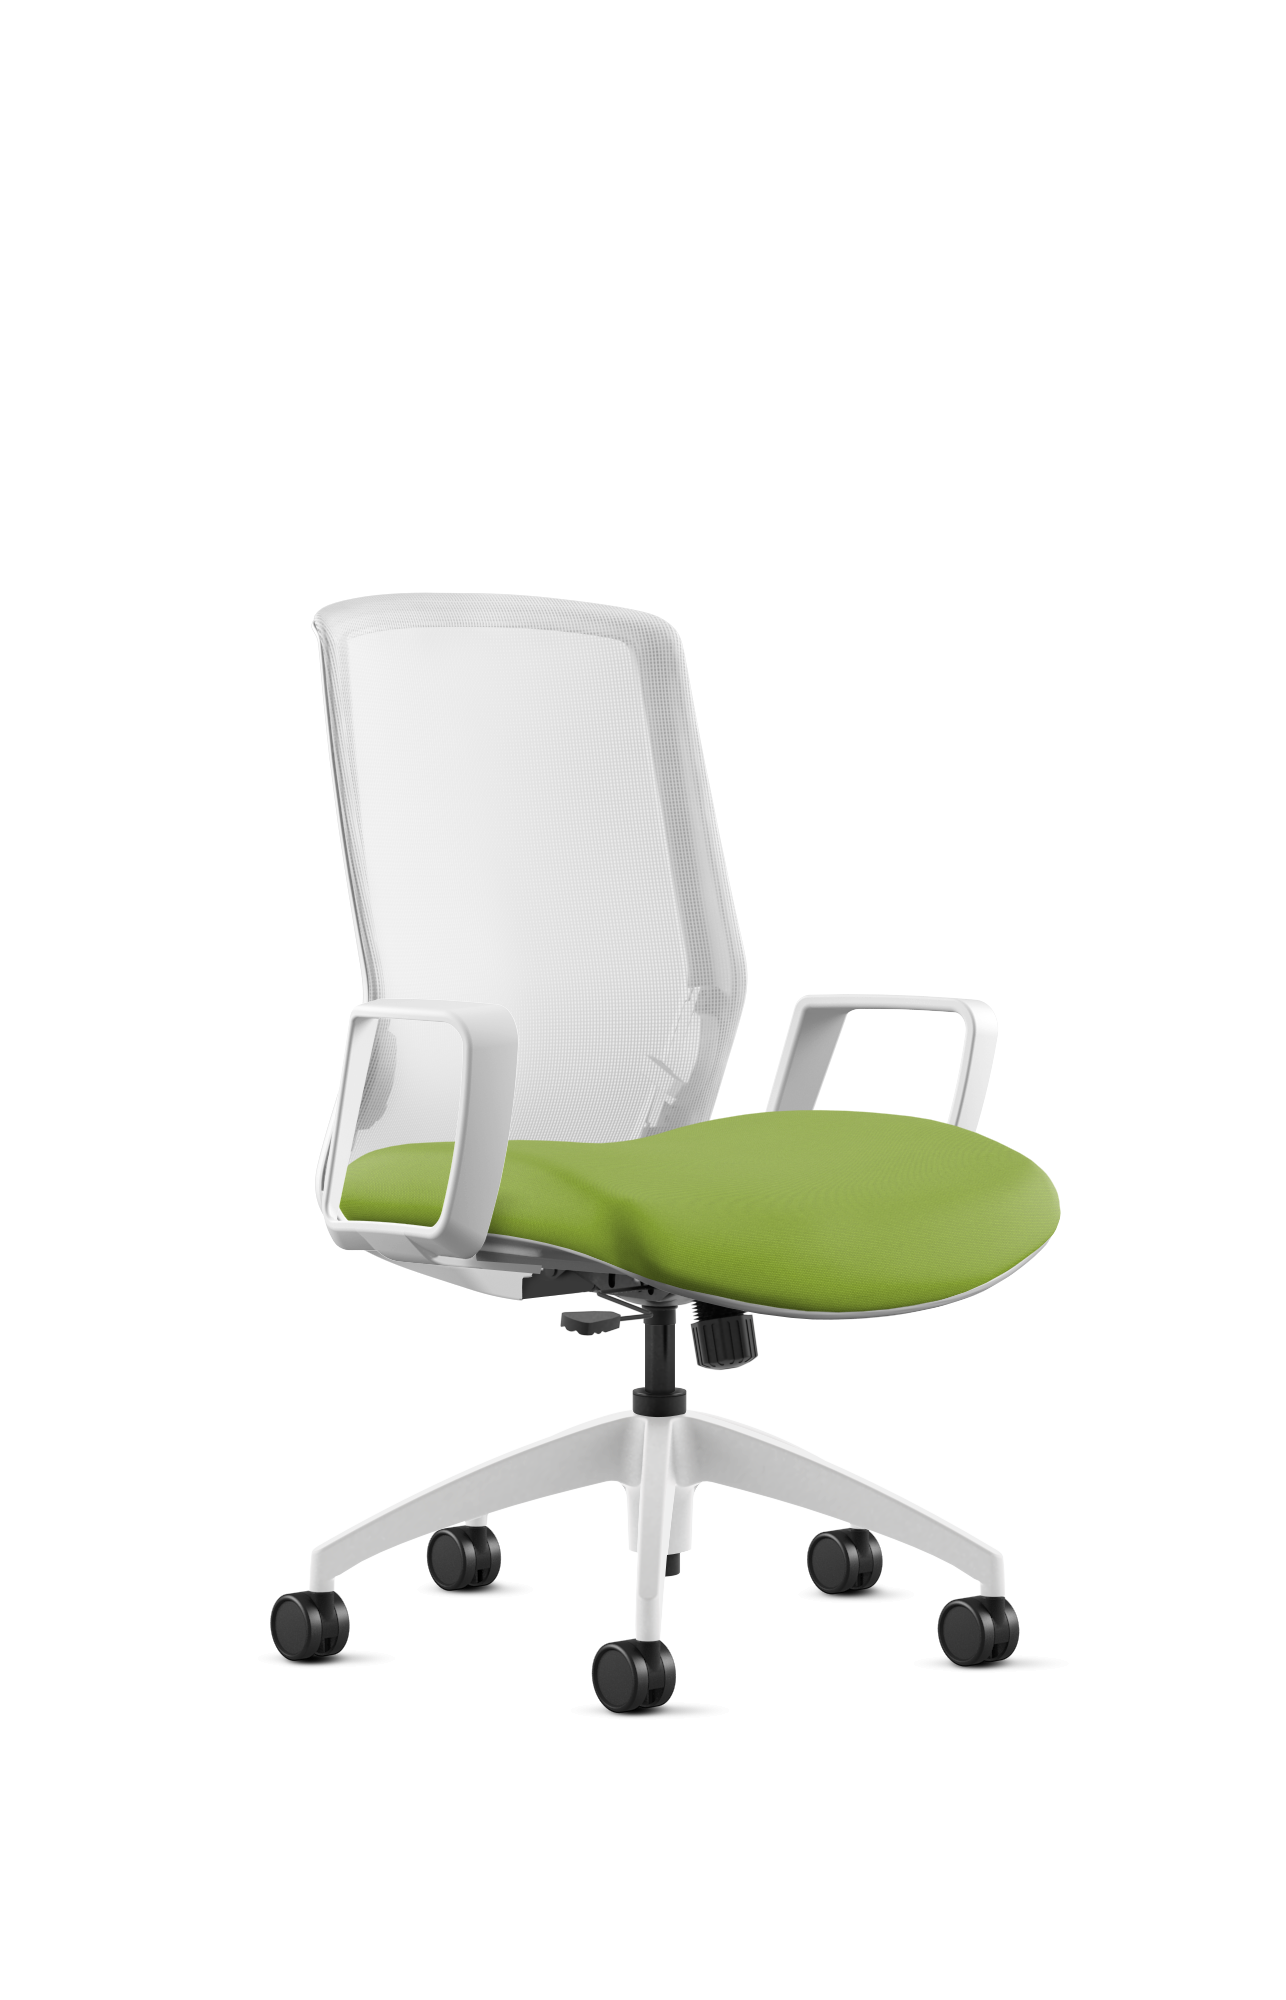 This Colorful Lime Green Desk Chair